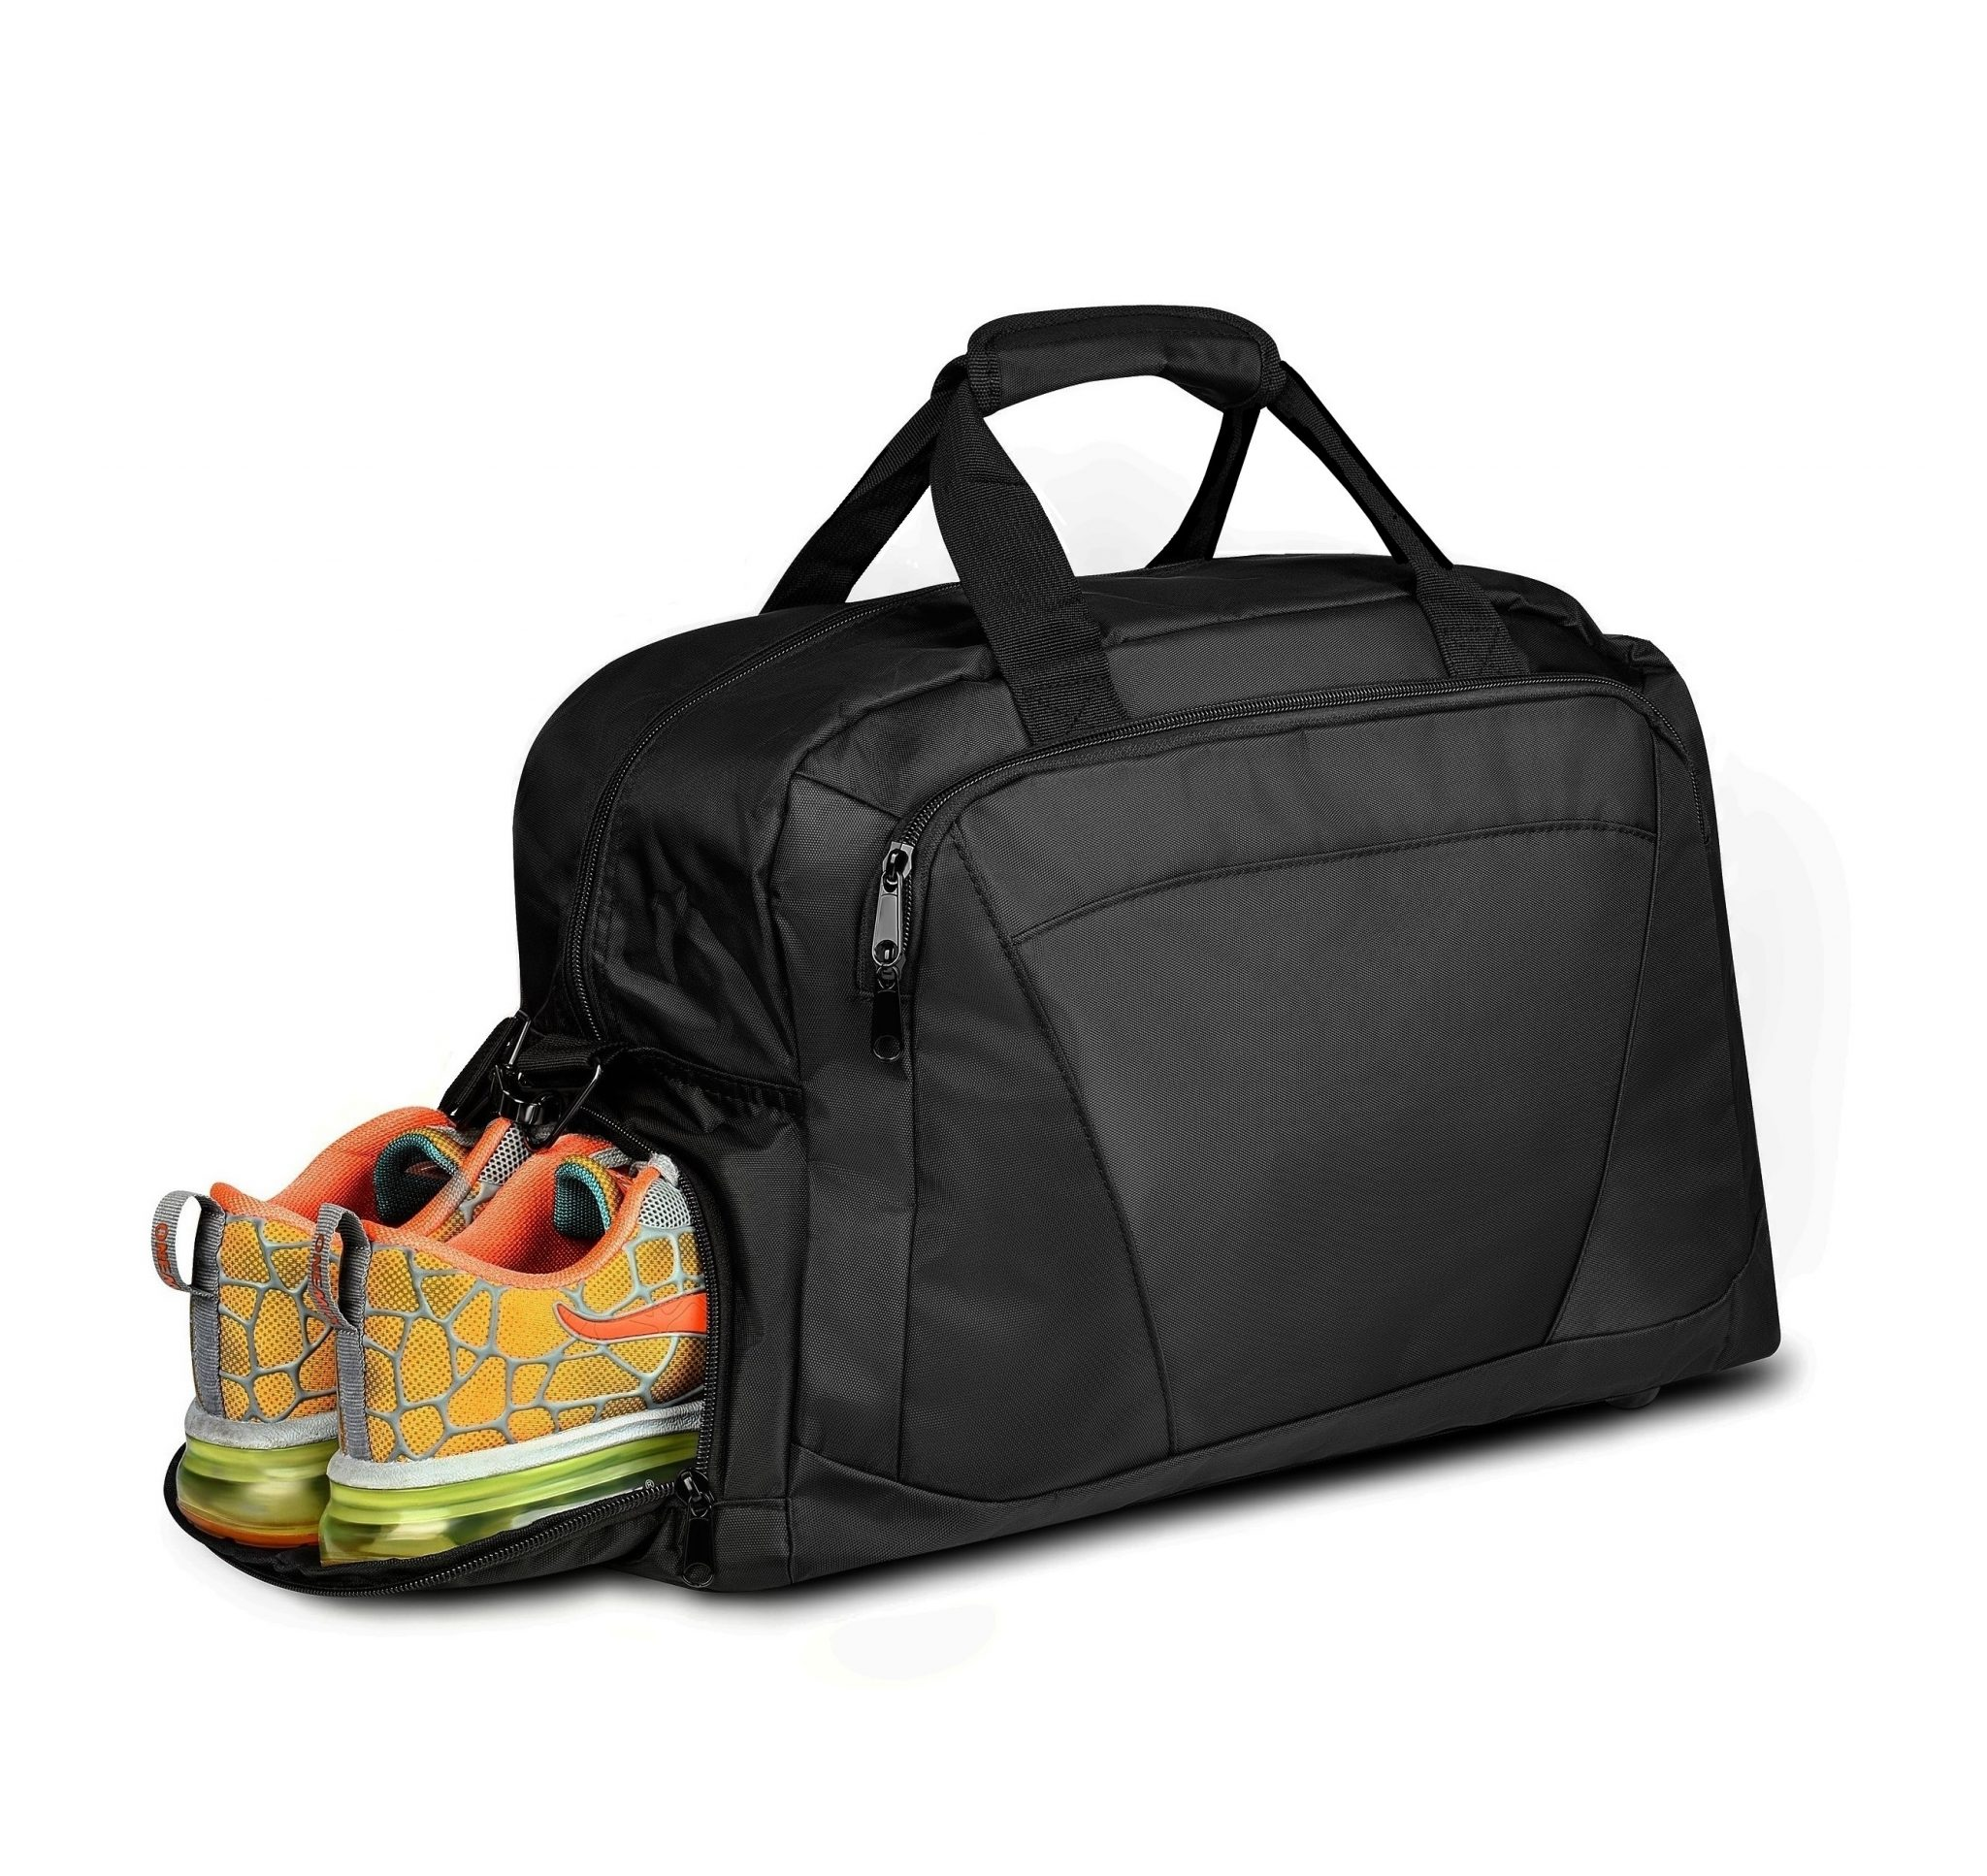 Hard Work Sports Gym Bag 2.0